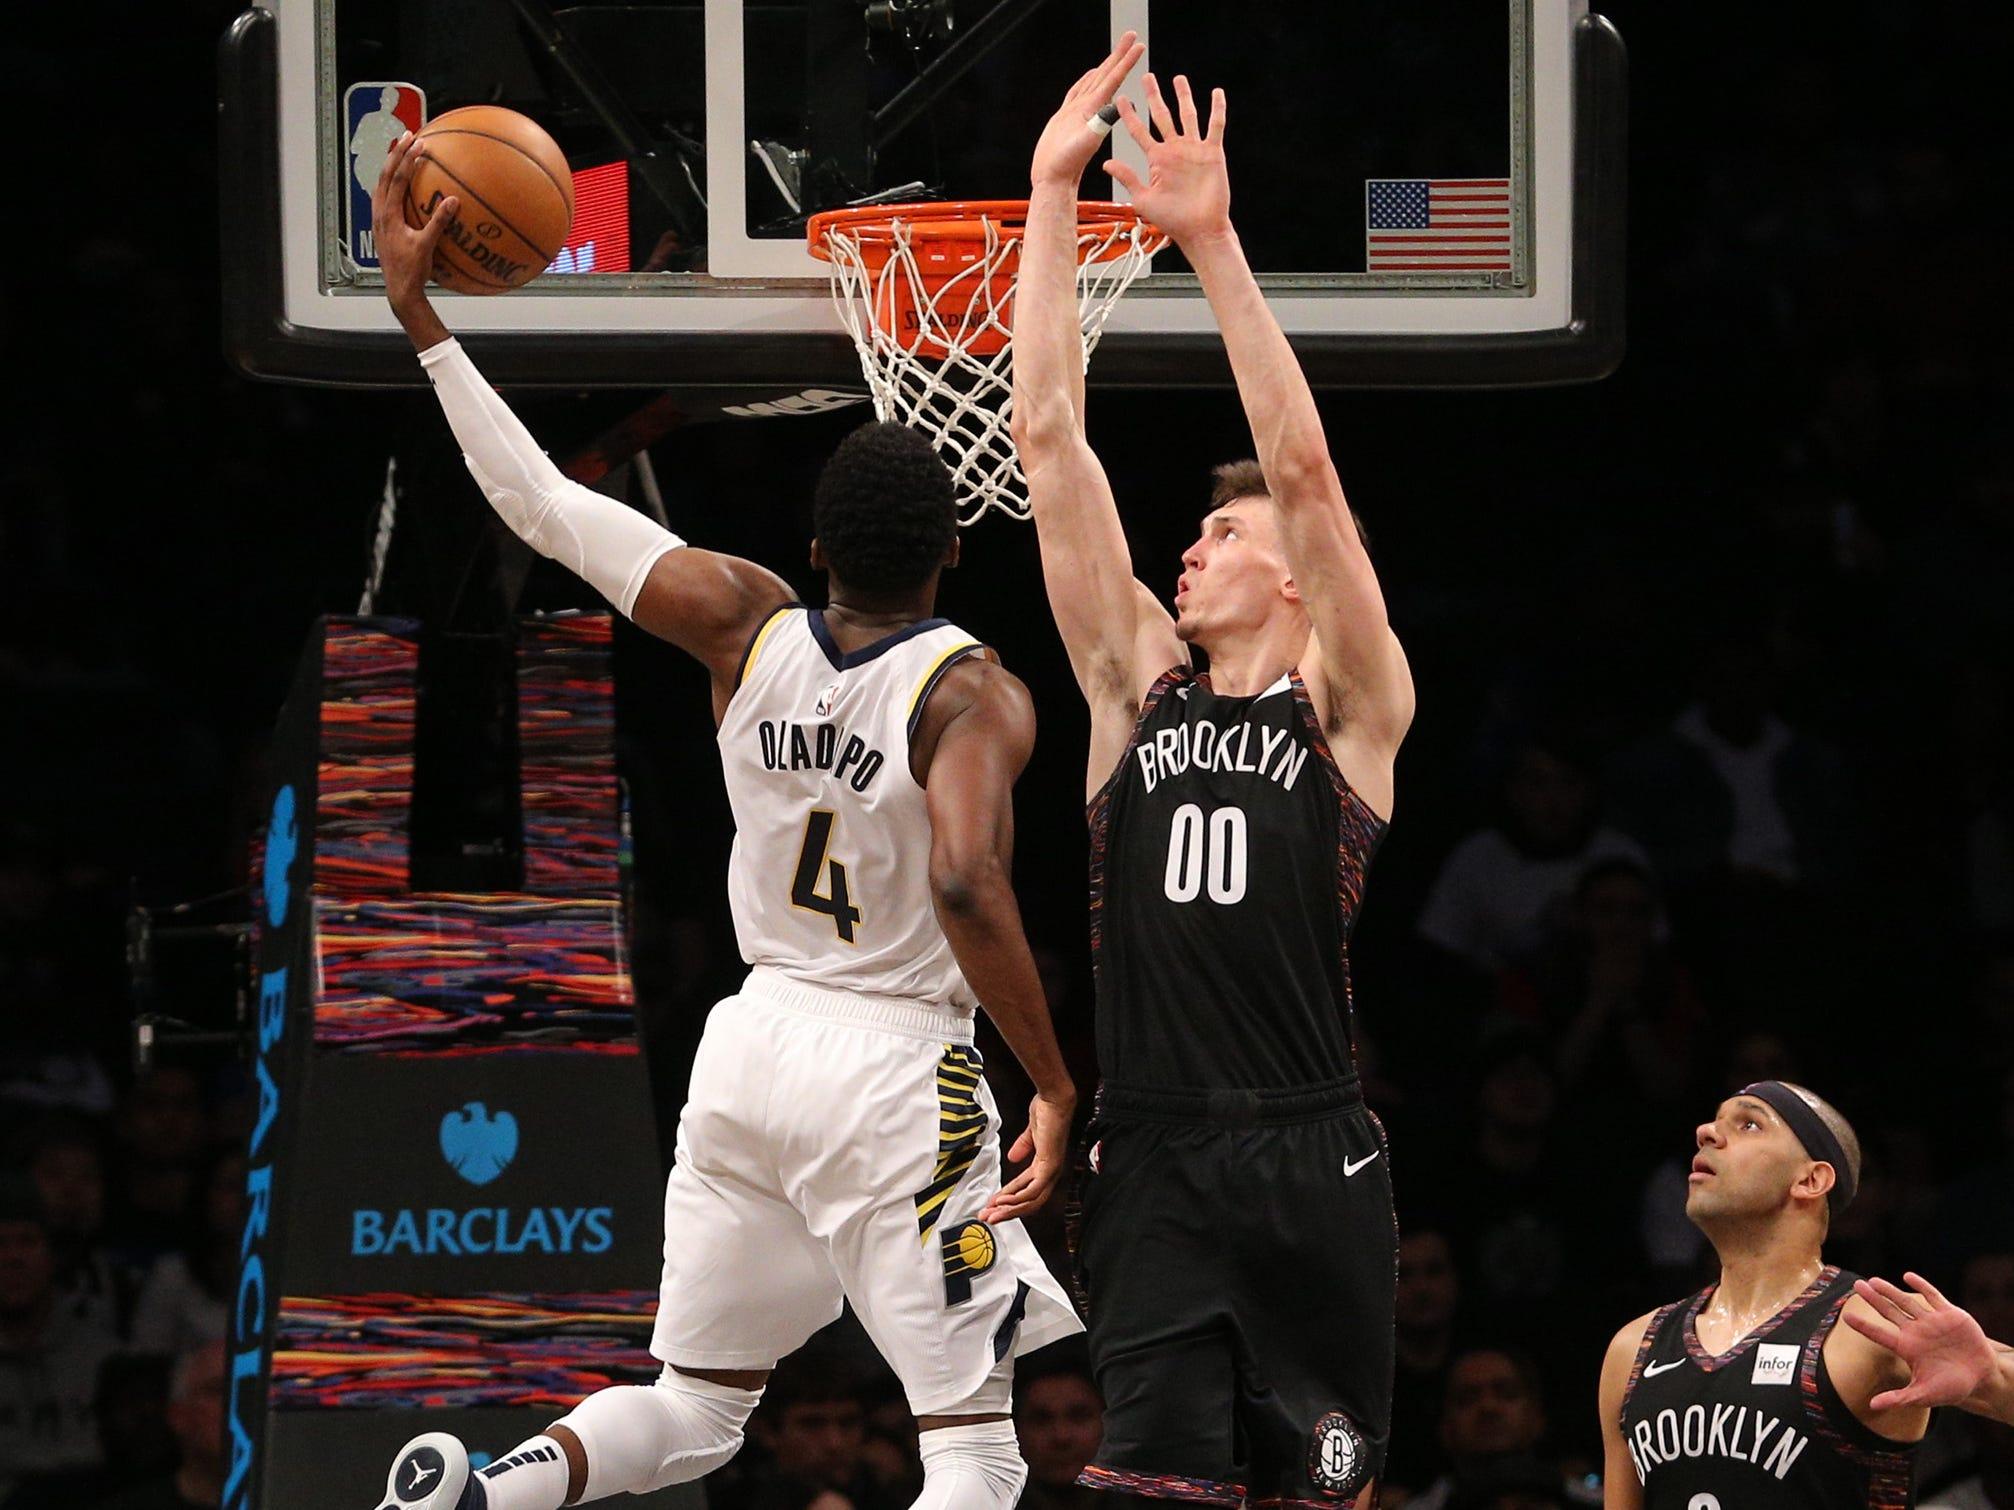 Dec. 21: Pacers guard Victor Oladipo (4) throws down a ferocious one-handed flush over Nets defender Rodions Kurucs (00) during the fourth quarter in Brooklyn.